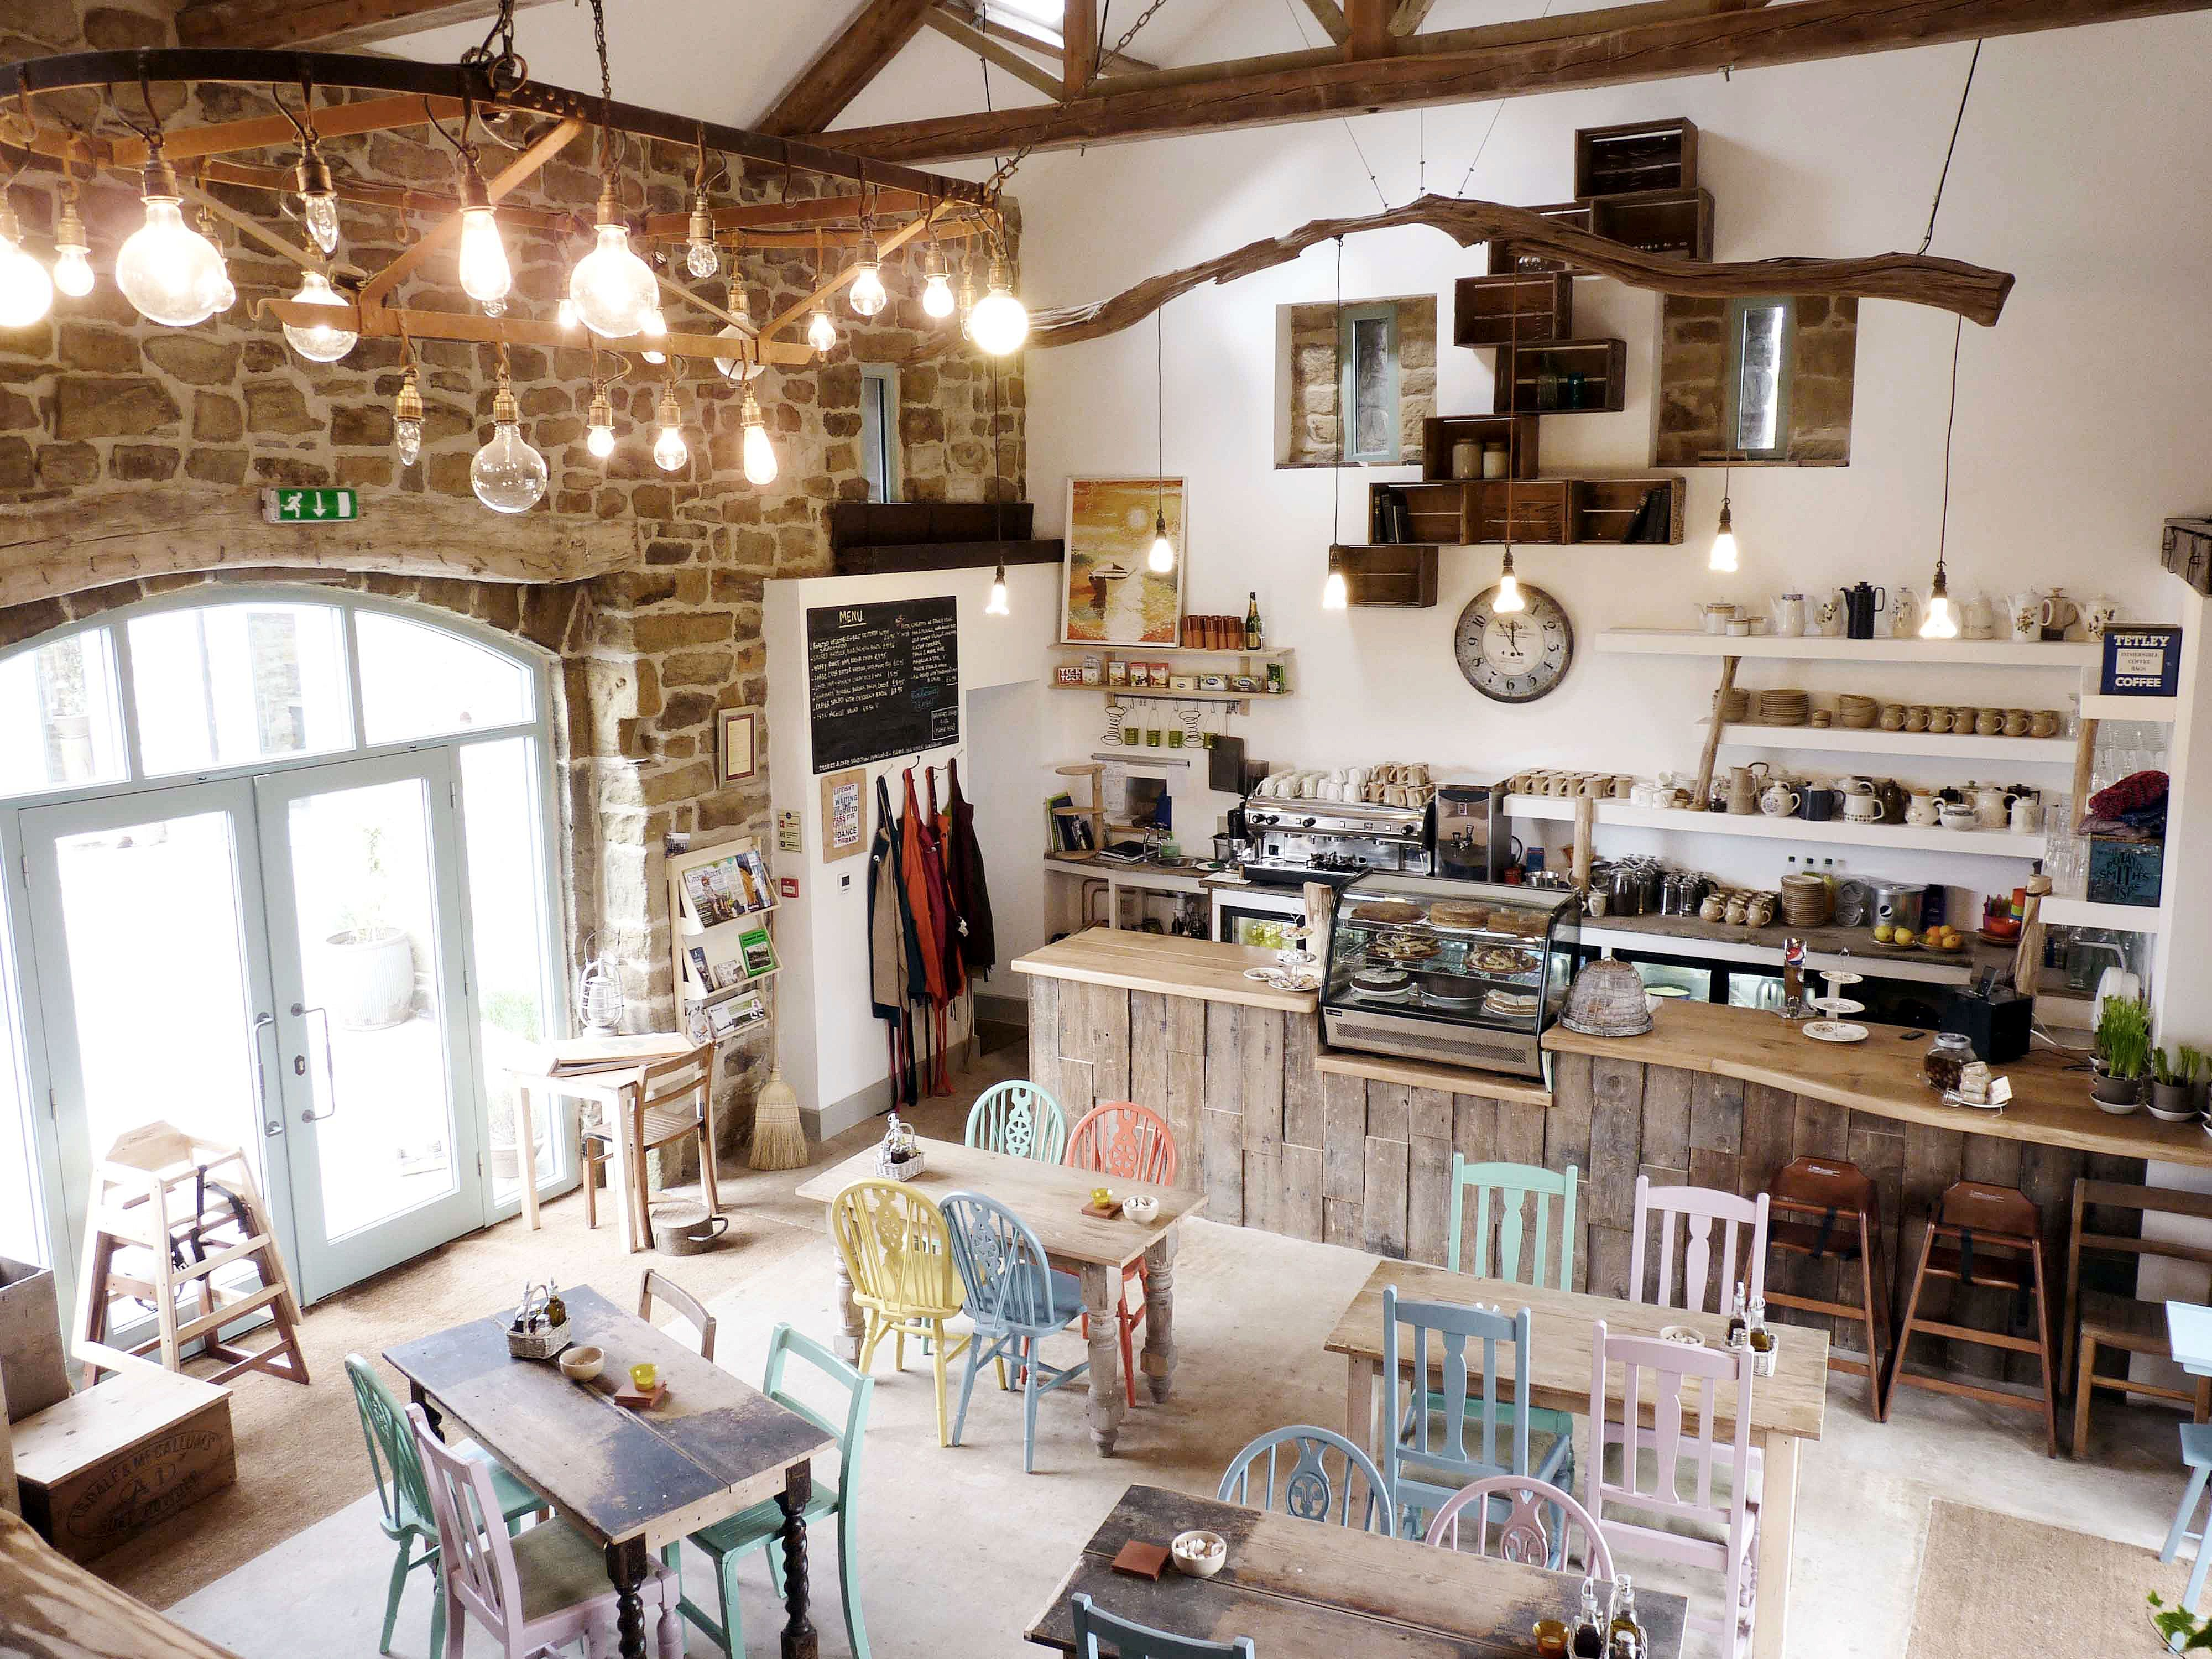 Back to nature at Bivouac | Bakery interior, Bakery store ...